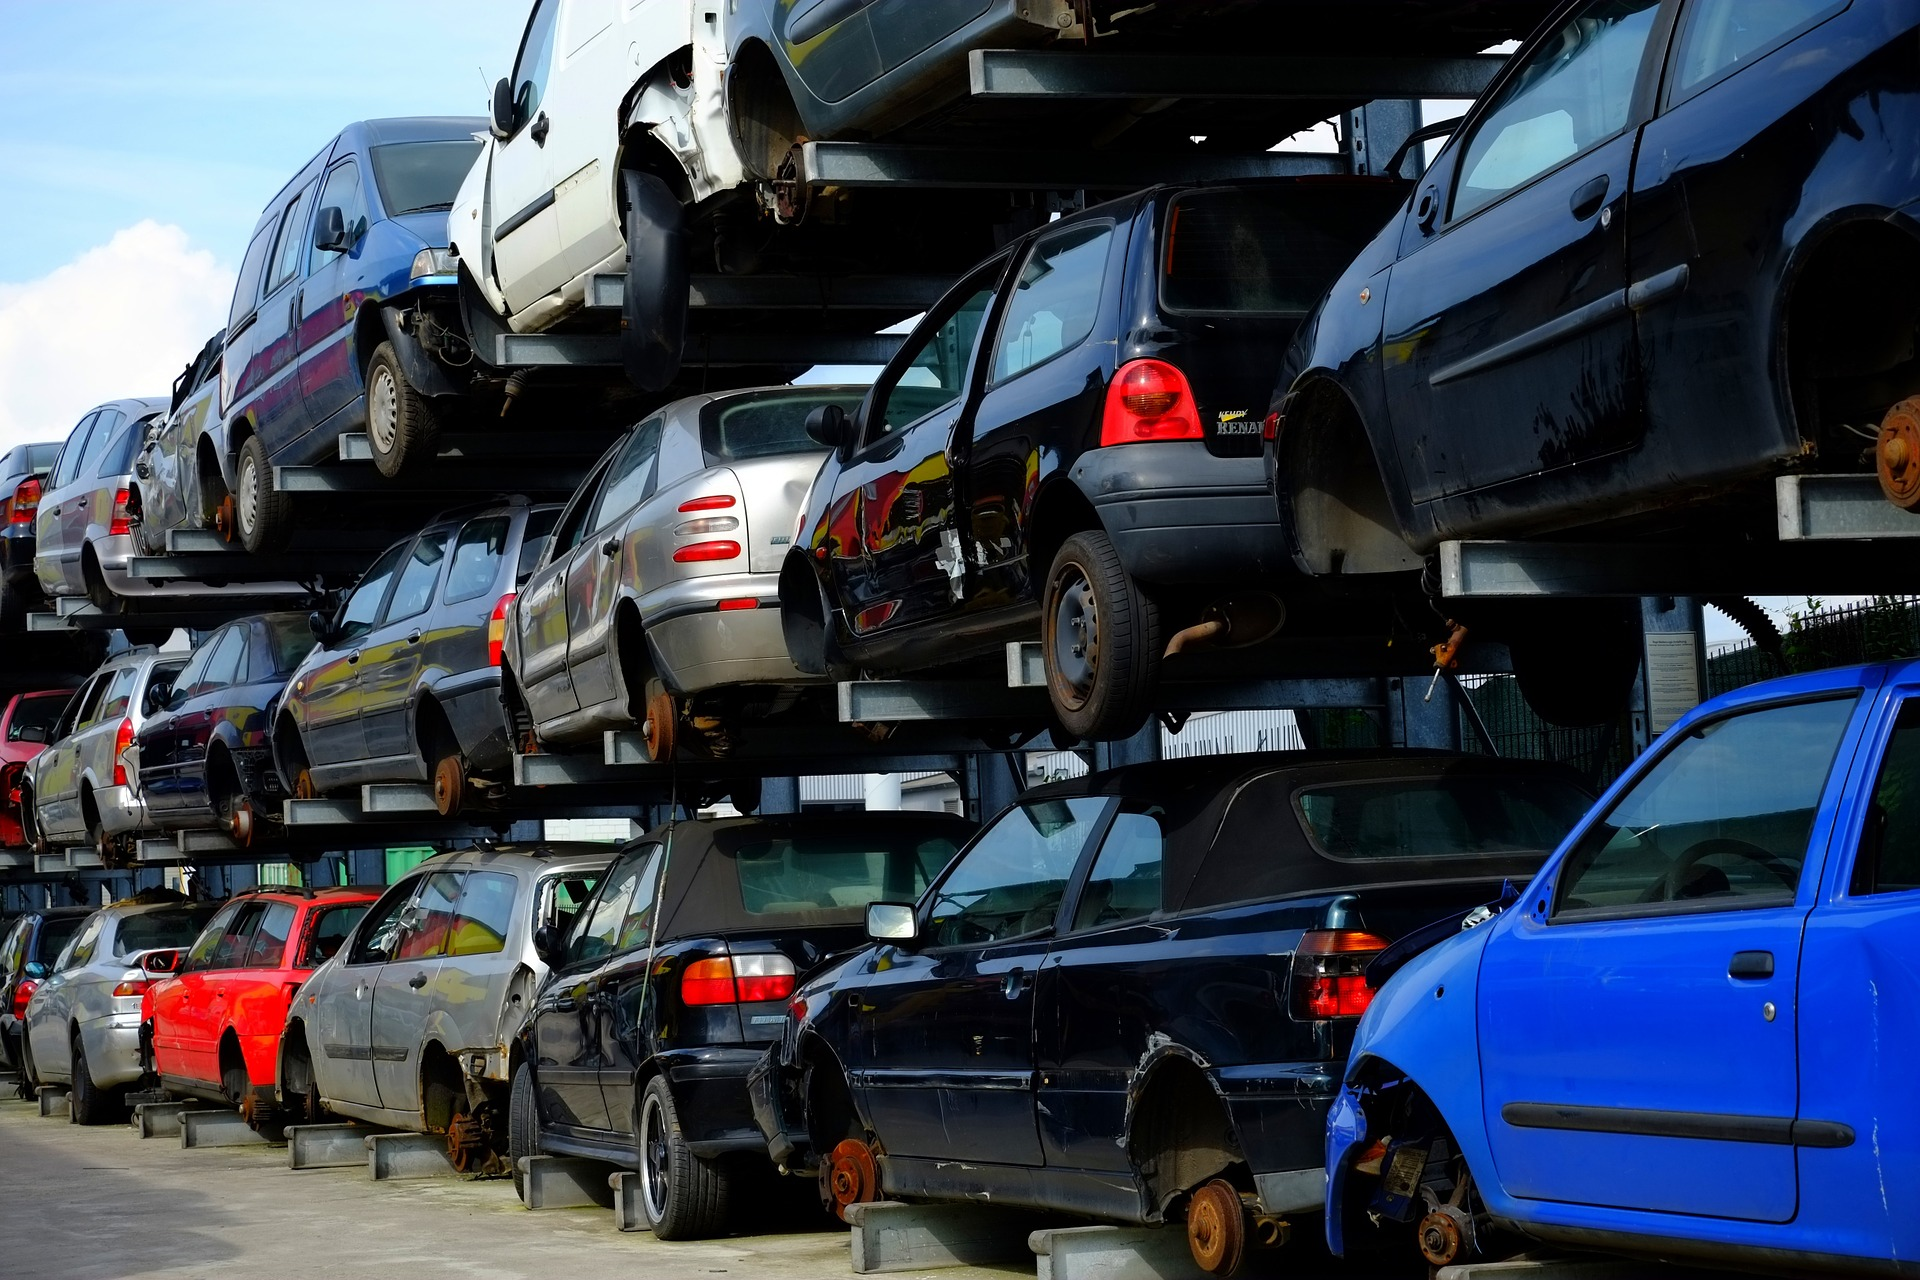 Used Car Parts Com Fresh Recycled Auto Parts or Used Auto Parts Call them Whatever You Like